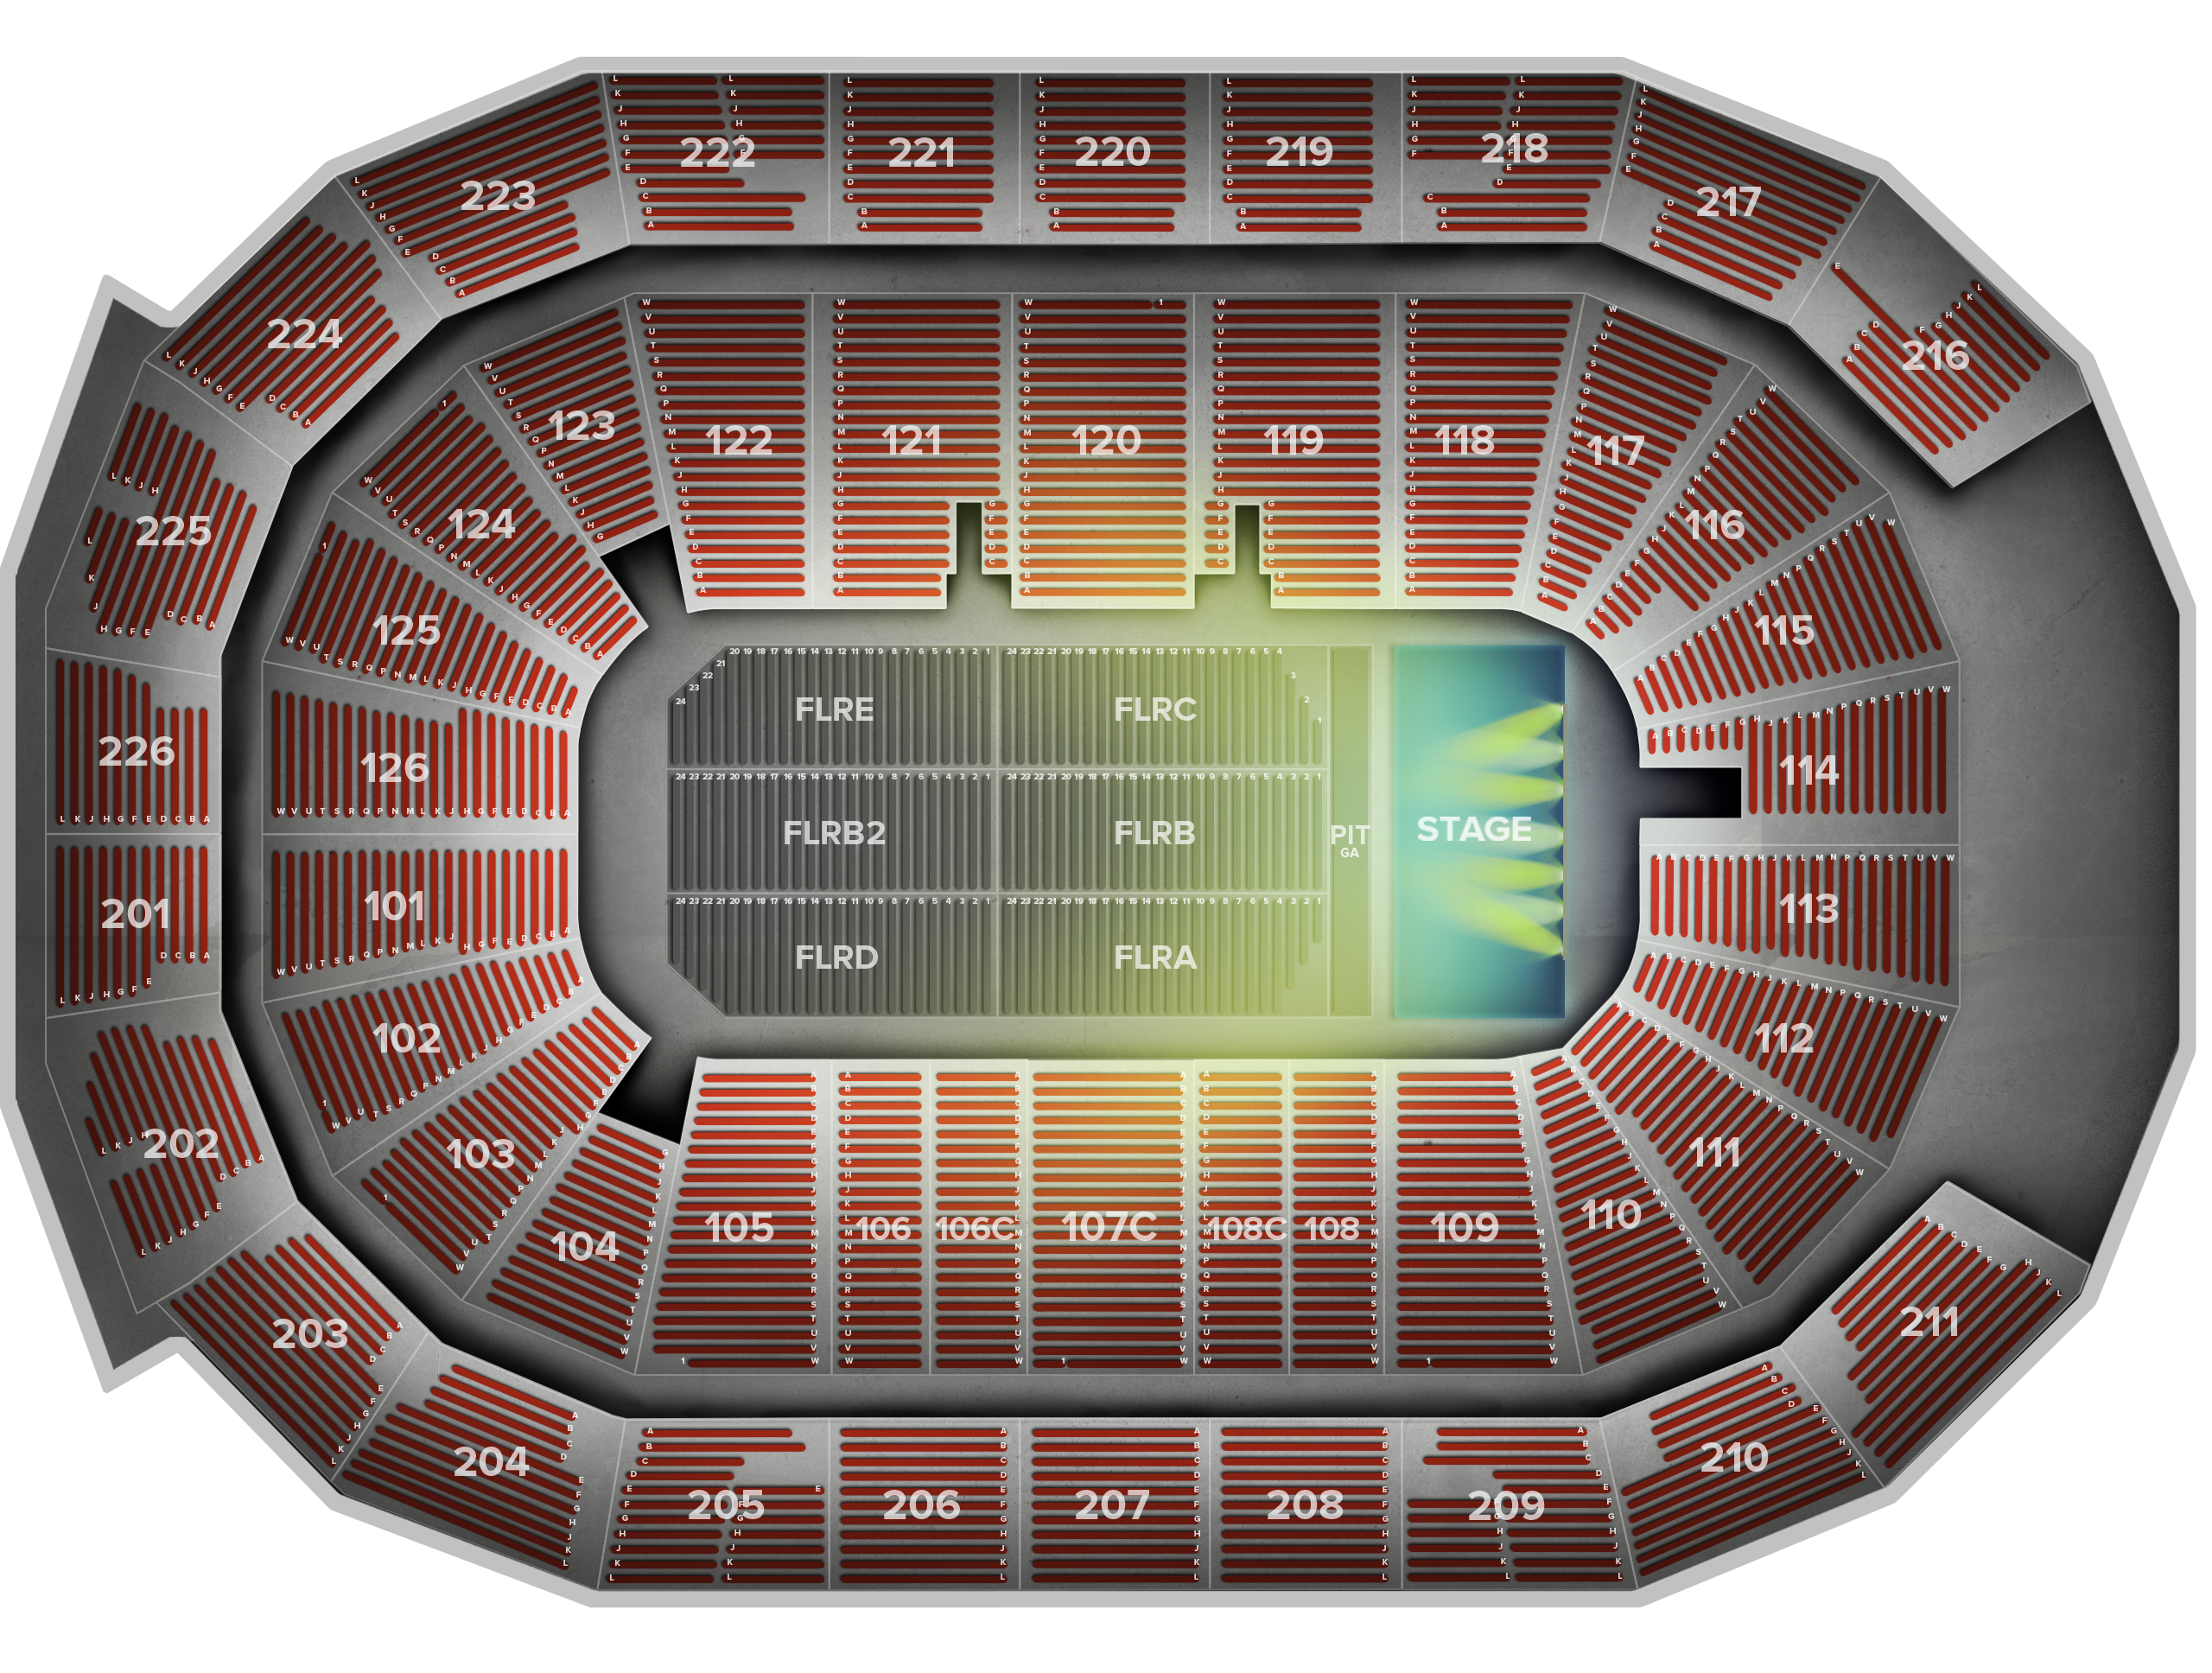 GIANT Center Tickets